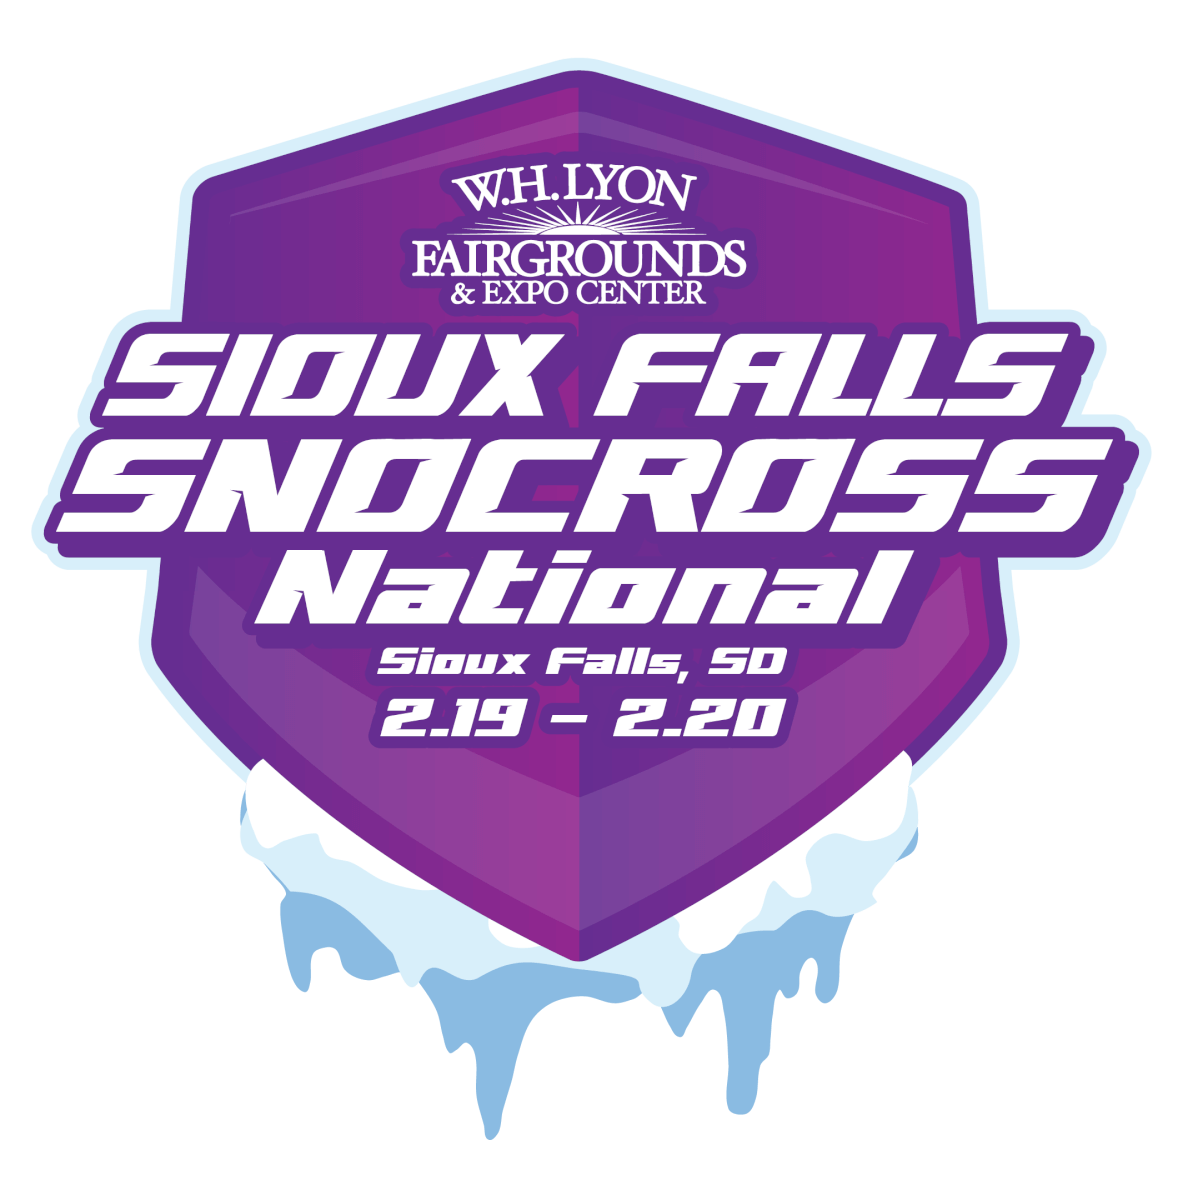 SIOUX FALLS SNOCROSS NATIONAL